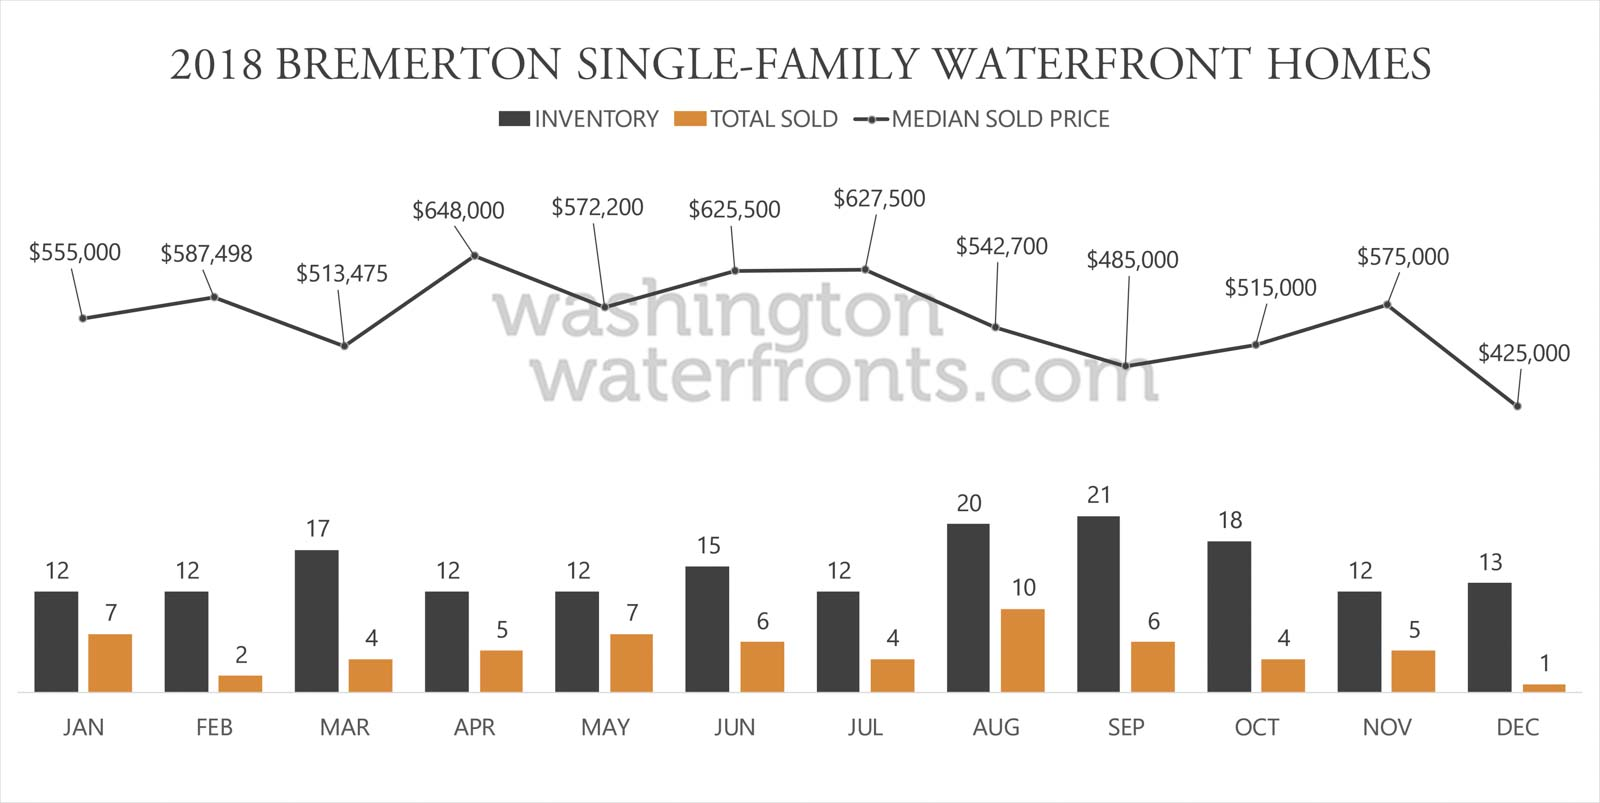 Bremerton Waterfront Inventory